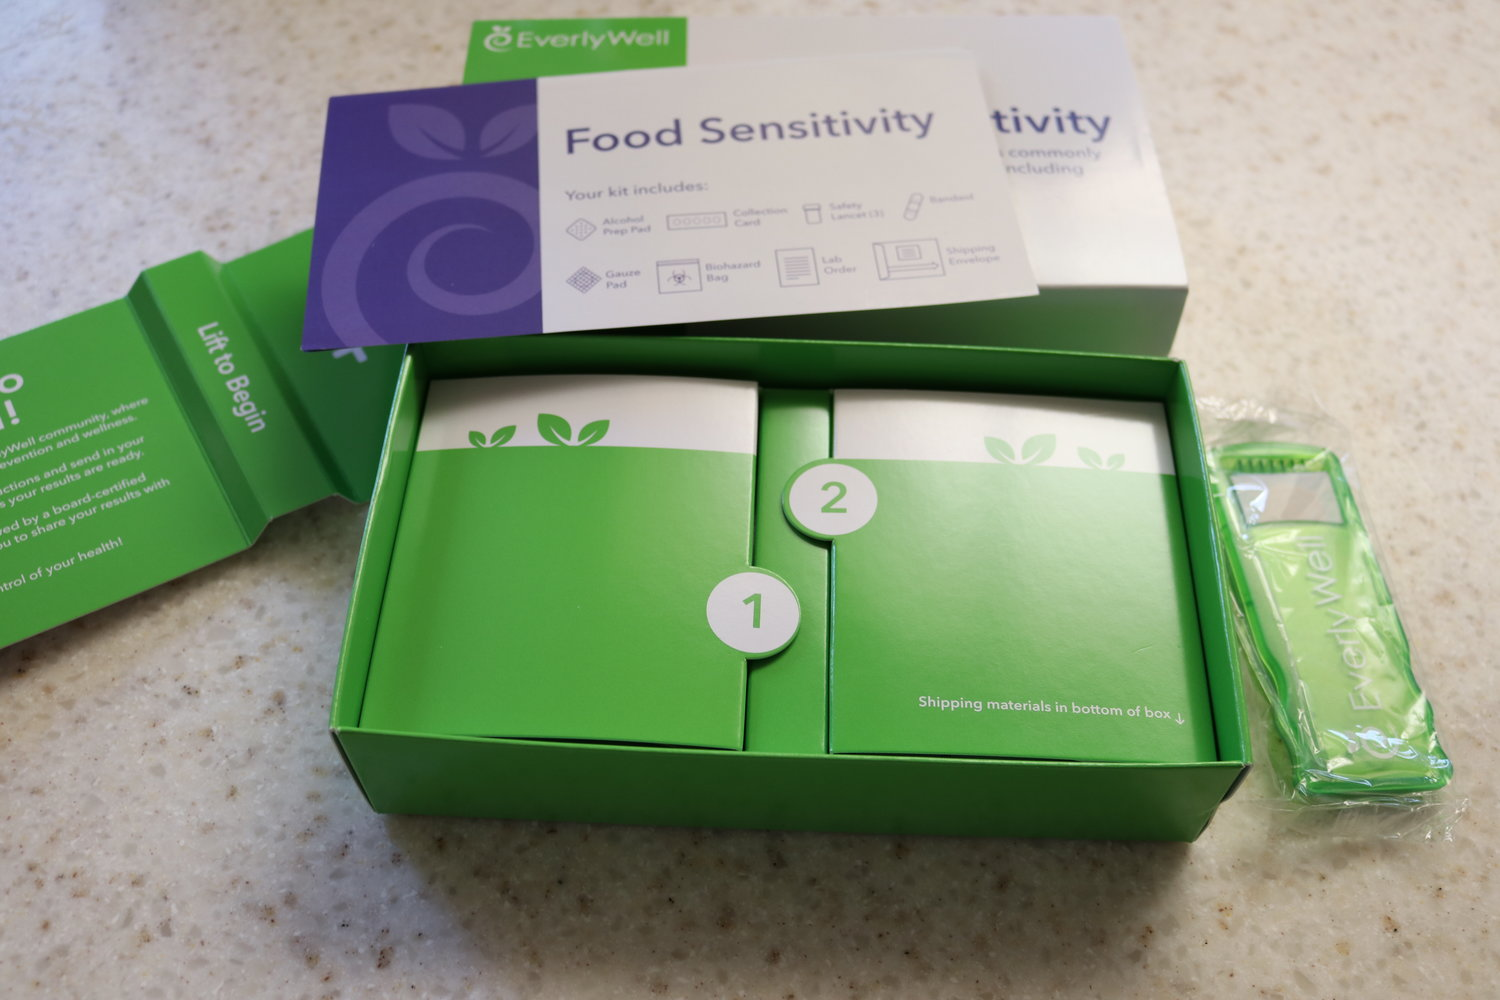 EverlyWell Test Review - EverlyWell Promo Code - EverlyWell Coupon Code EverlyWellDiscount Code- Food Sensitivity Test Review - EverlyWell Reviews - Does EverlyWell Work? Is the EverlyWell test accurate?Here is our EverlyWell Review and what we thought of the EverlyWell Food Sensitivity test. AND a special EverlyWell Coupon Code! 12% off all EverlyWell tests!